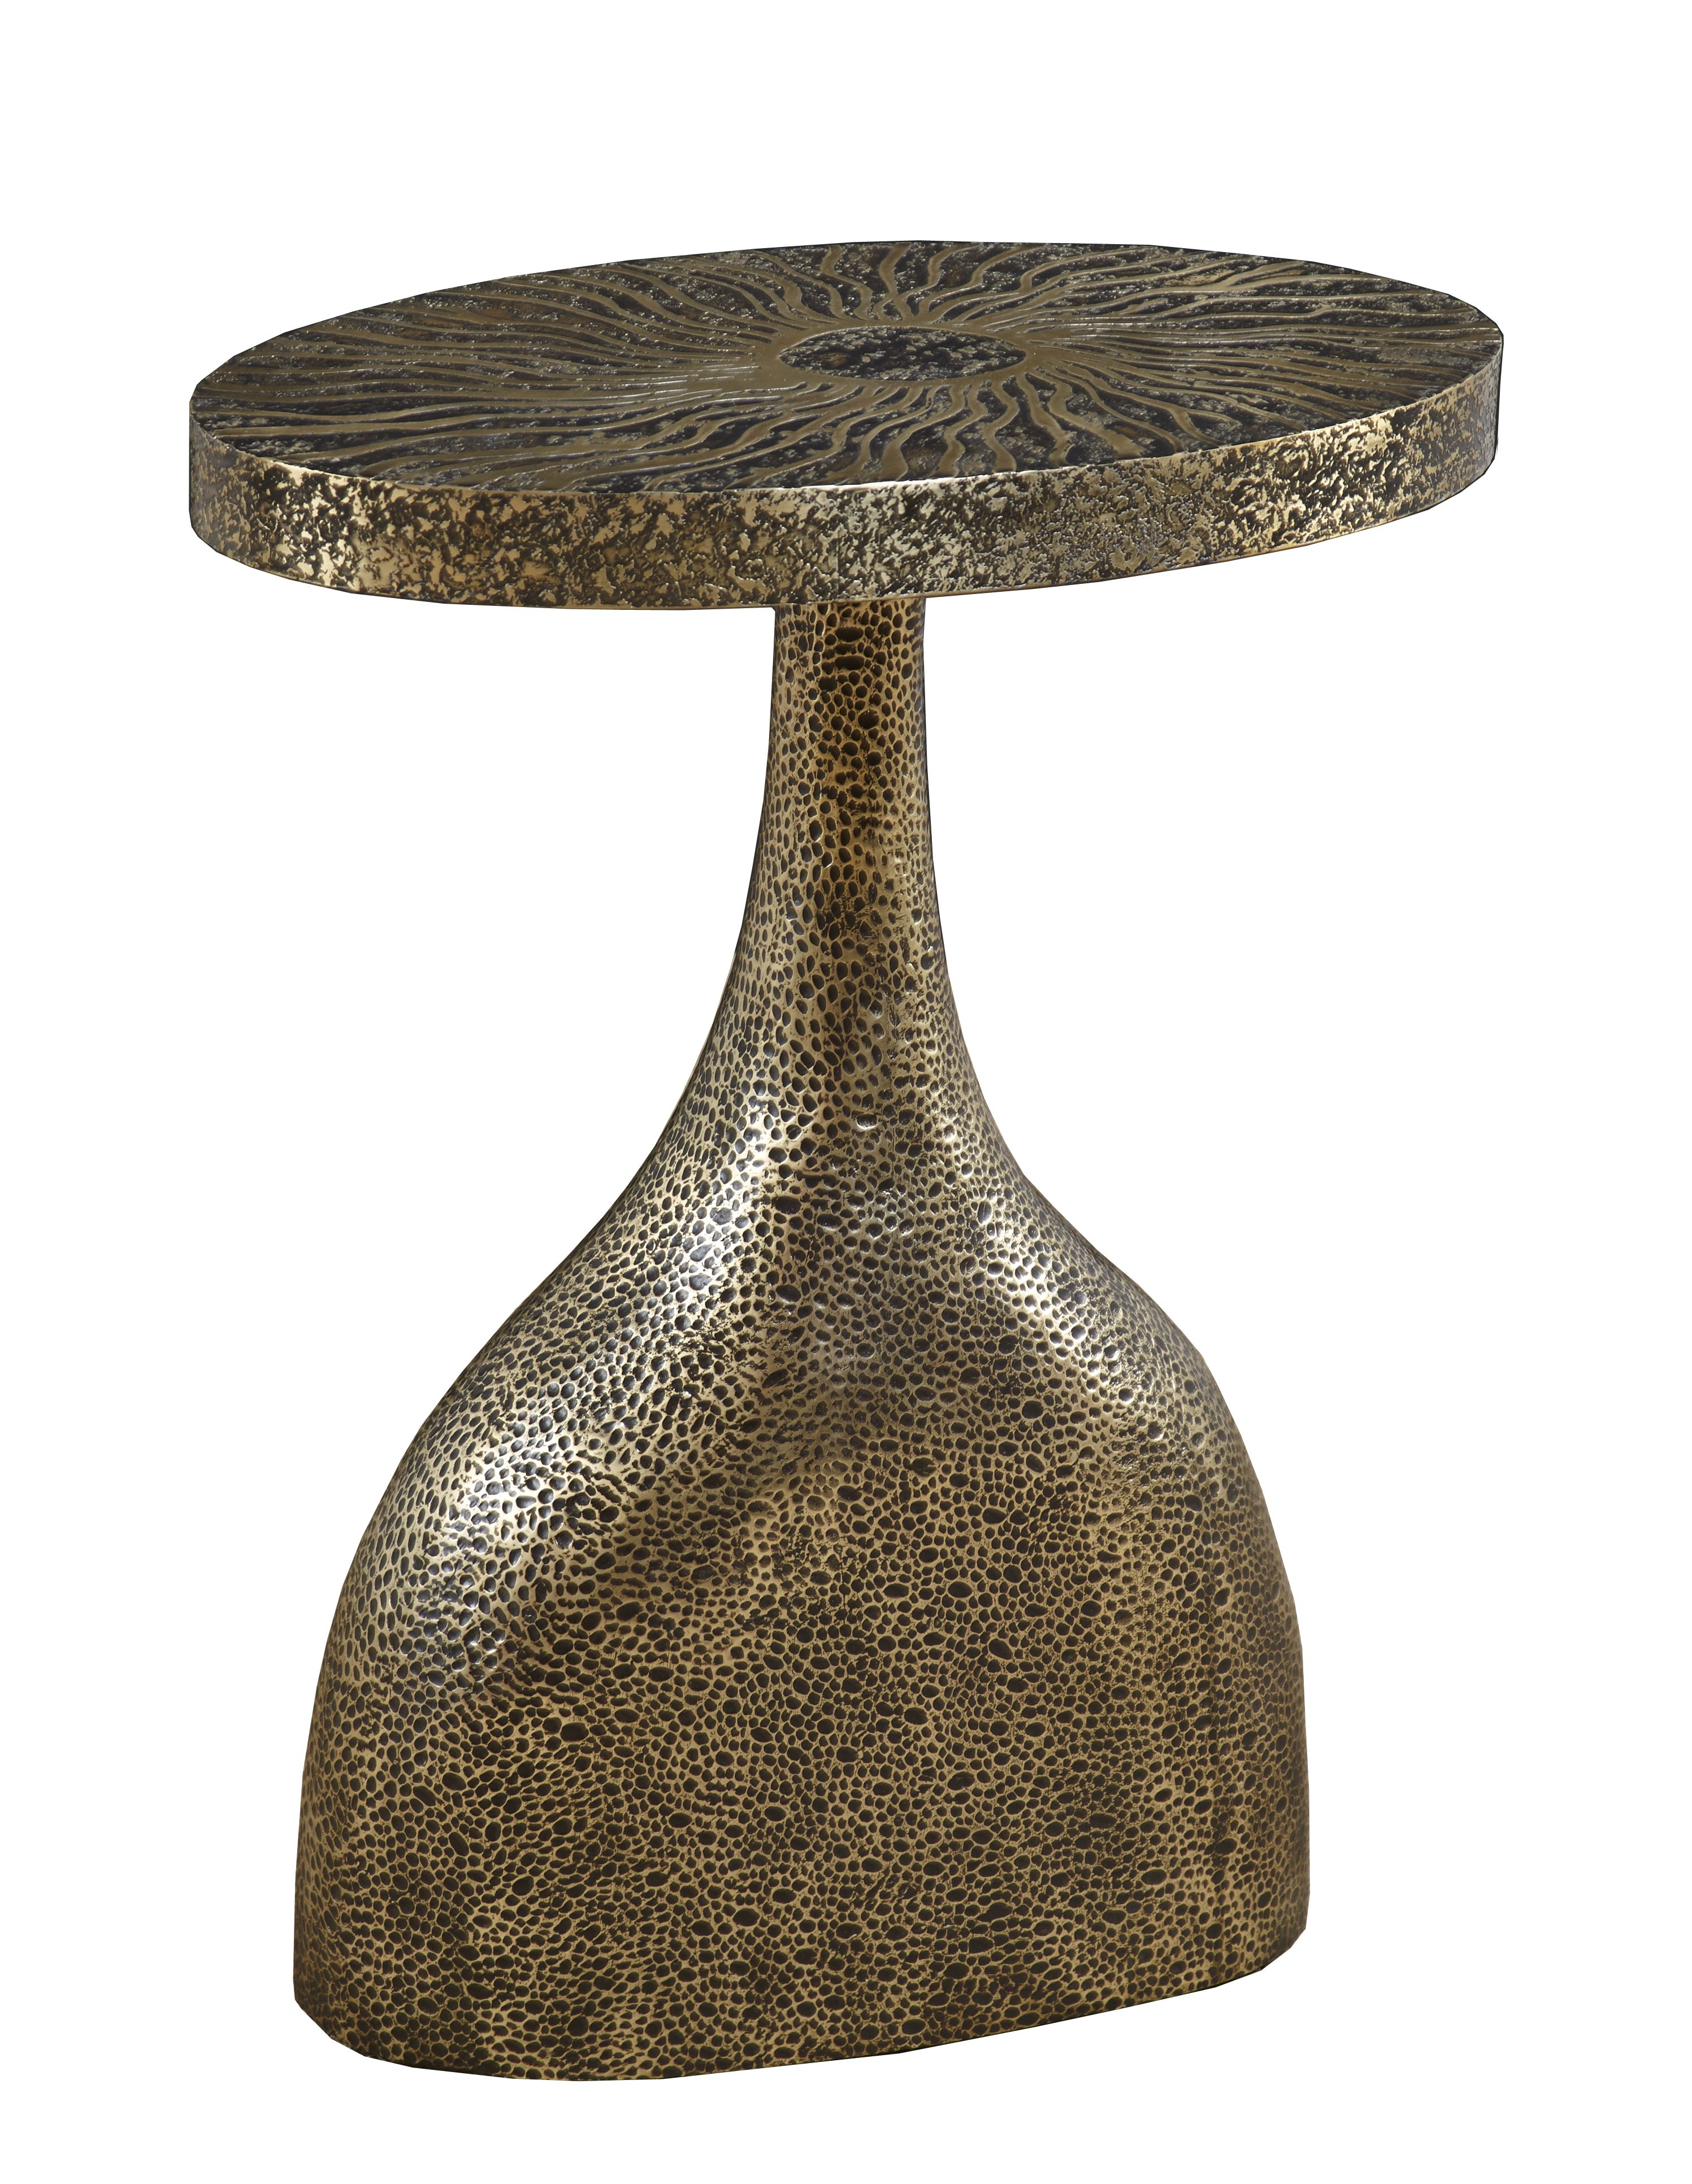 the funnel accent table alden parkes shaped and cast base from aluminum with hand hammered tabletop etched pattern sun brown living room furniture barn dining kenroy home used